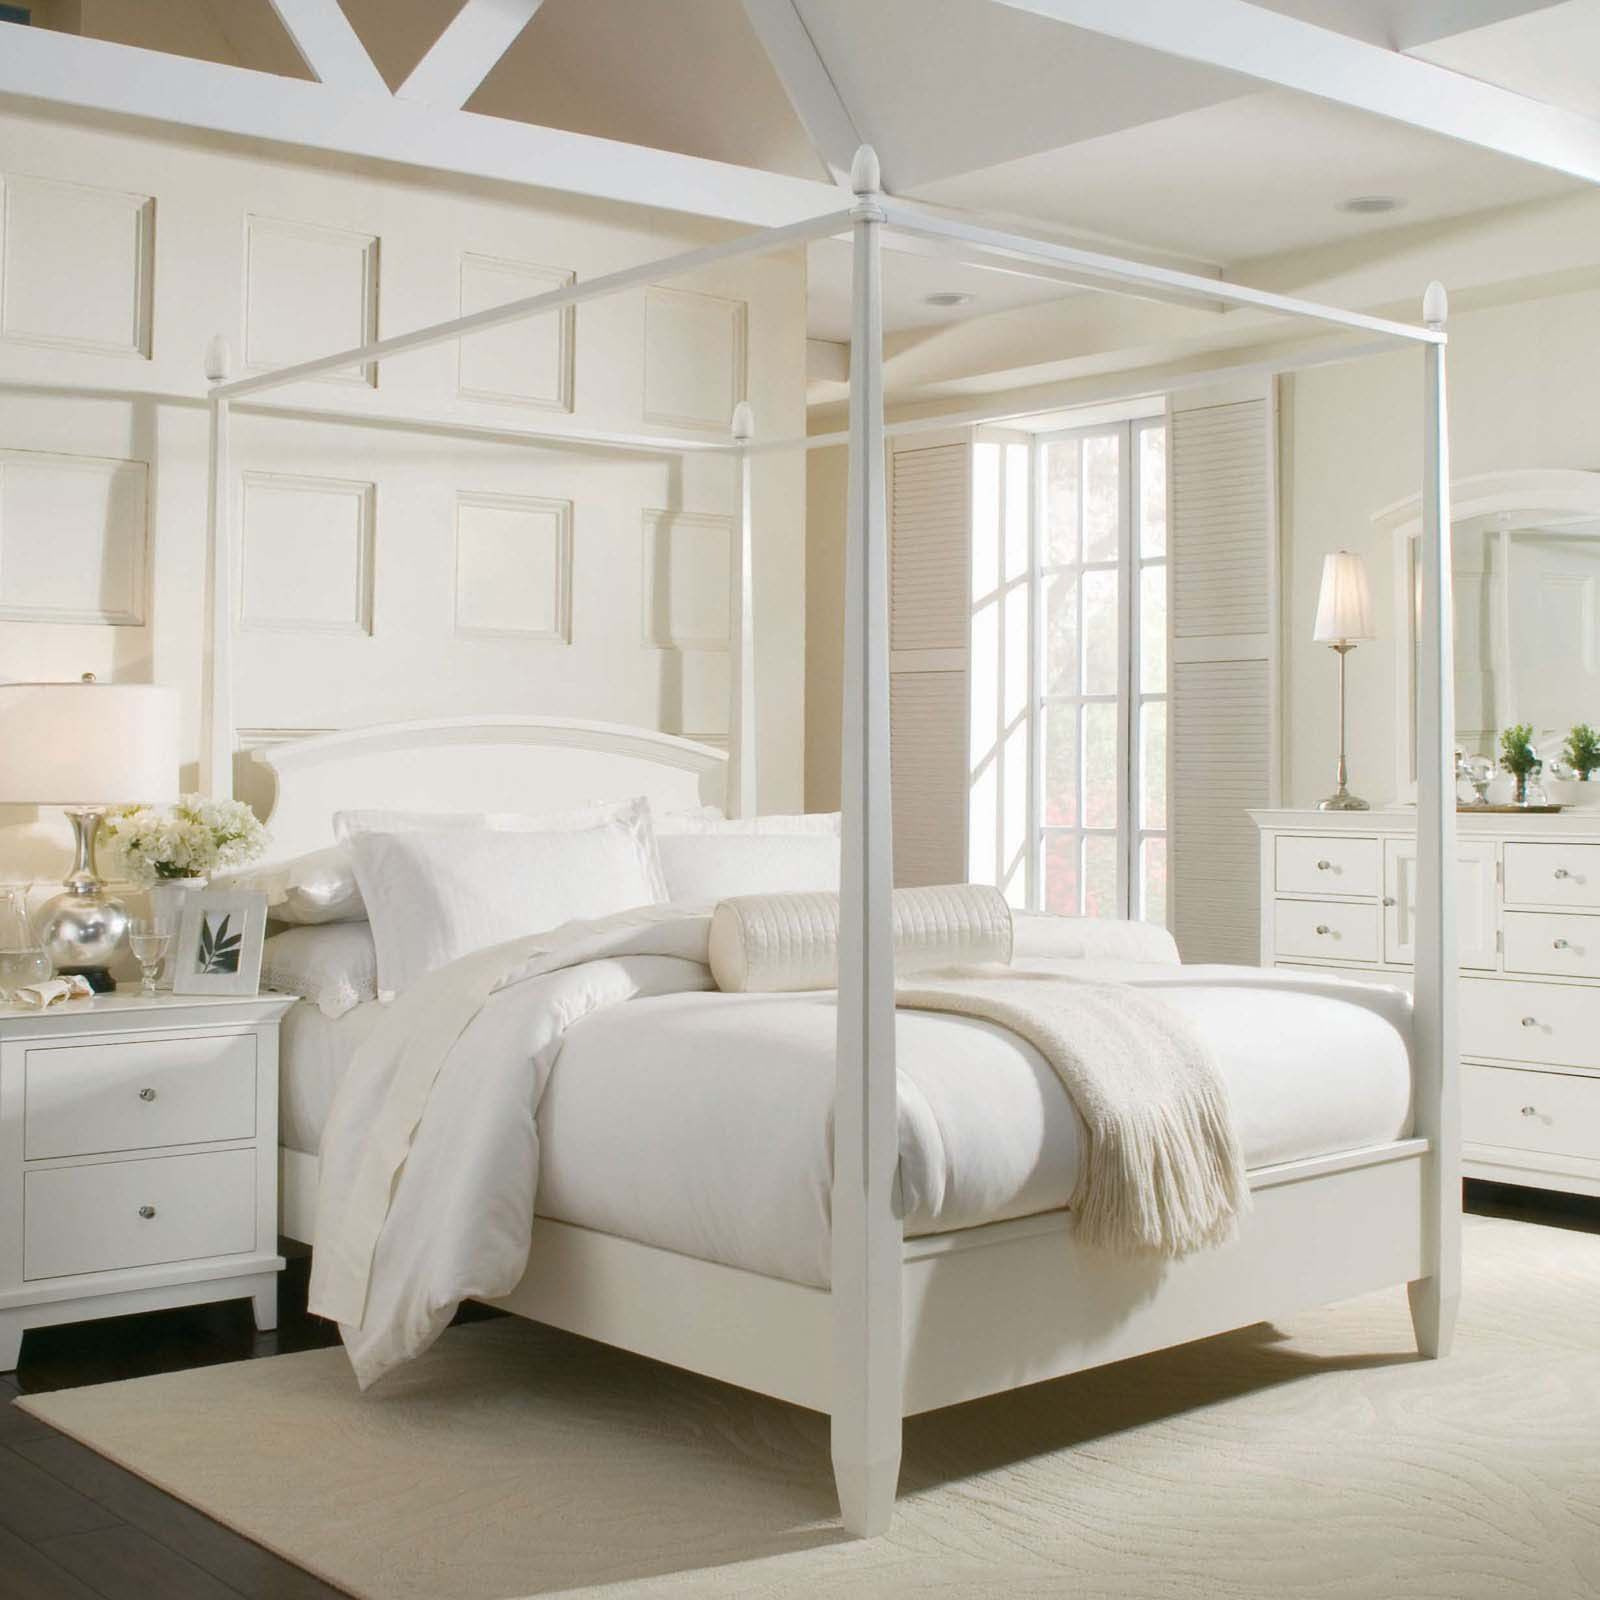 Canopy Beds 40 Stunning Bedrooms White Bedroom Design White Master Bedroom All White Bedroom